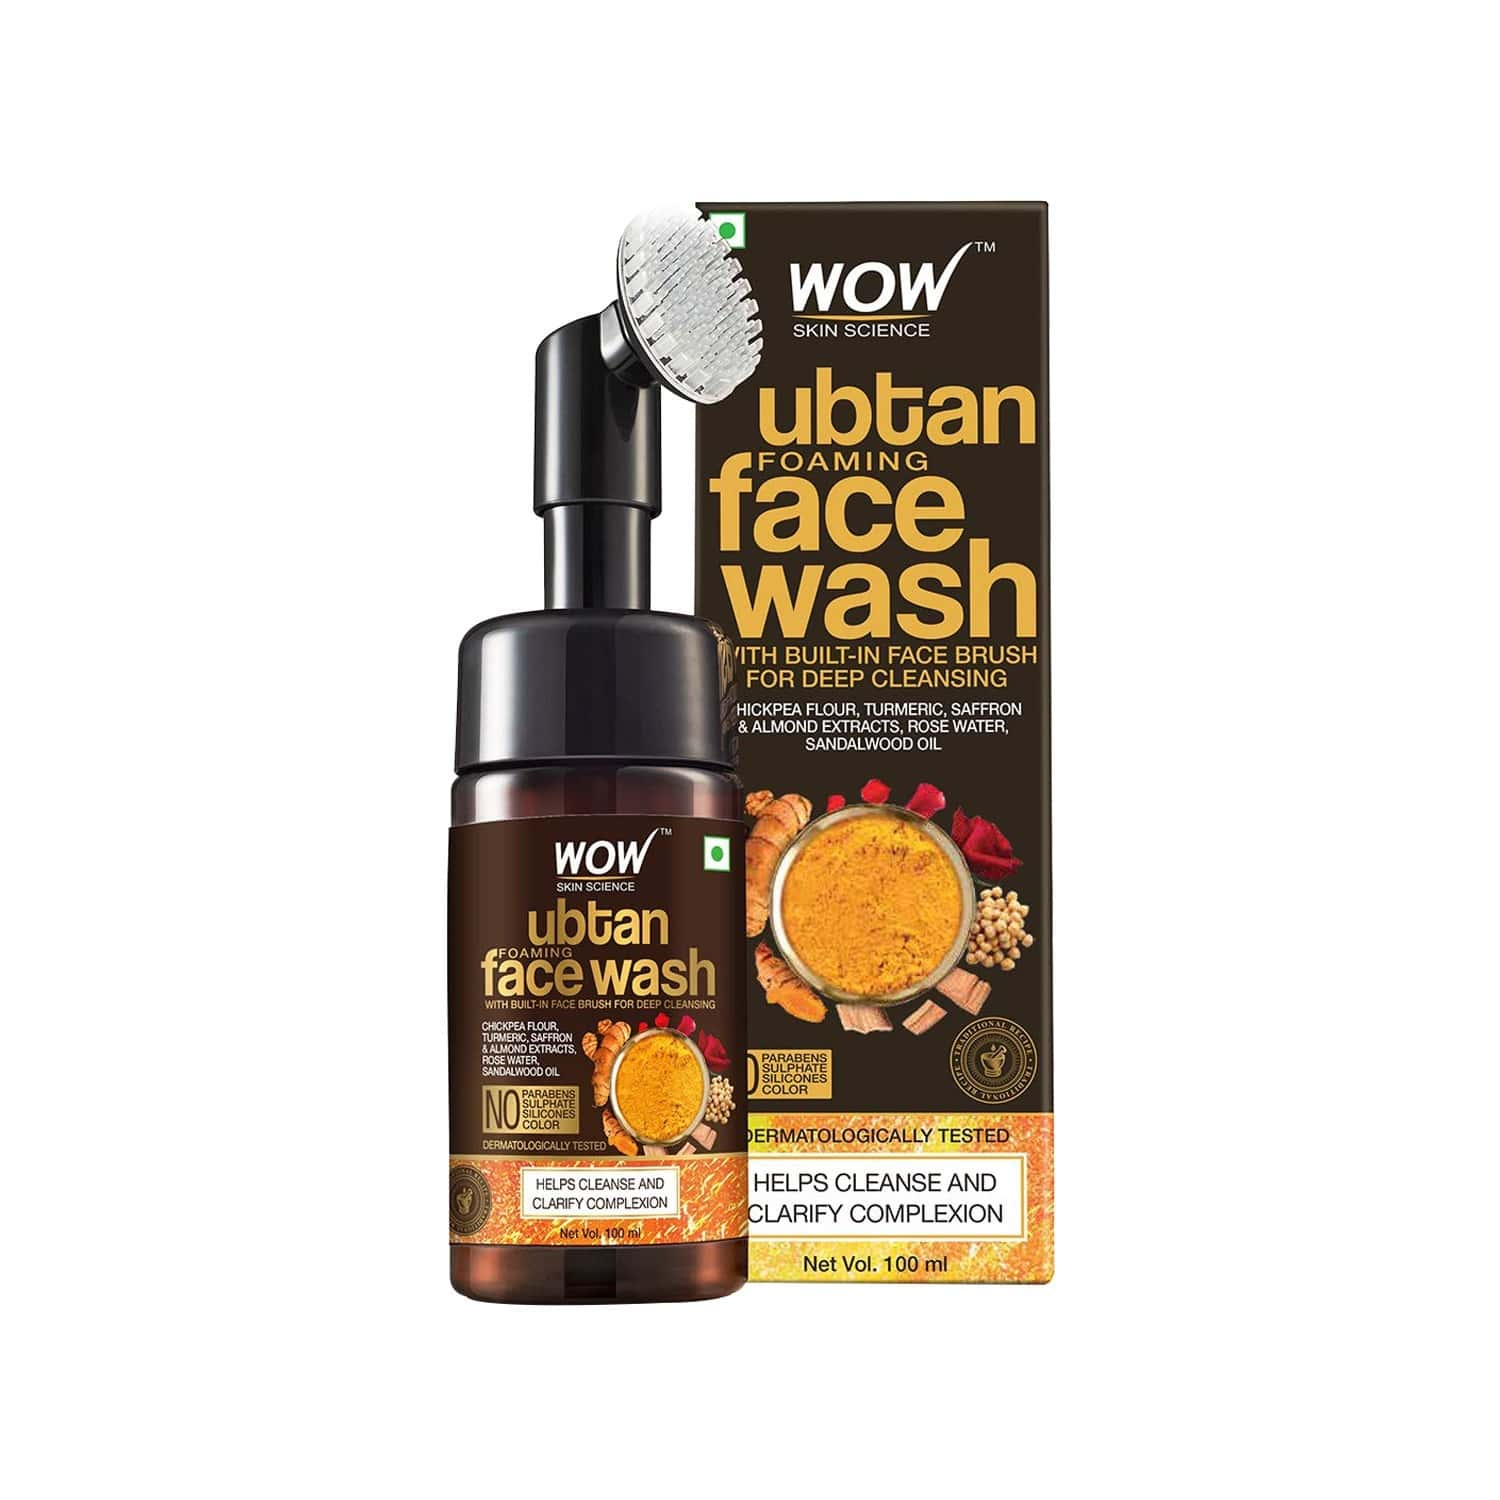 Wow Skin Science Ubtan Foaming Face Wash With Built-in Brush - 100 Ml